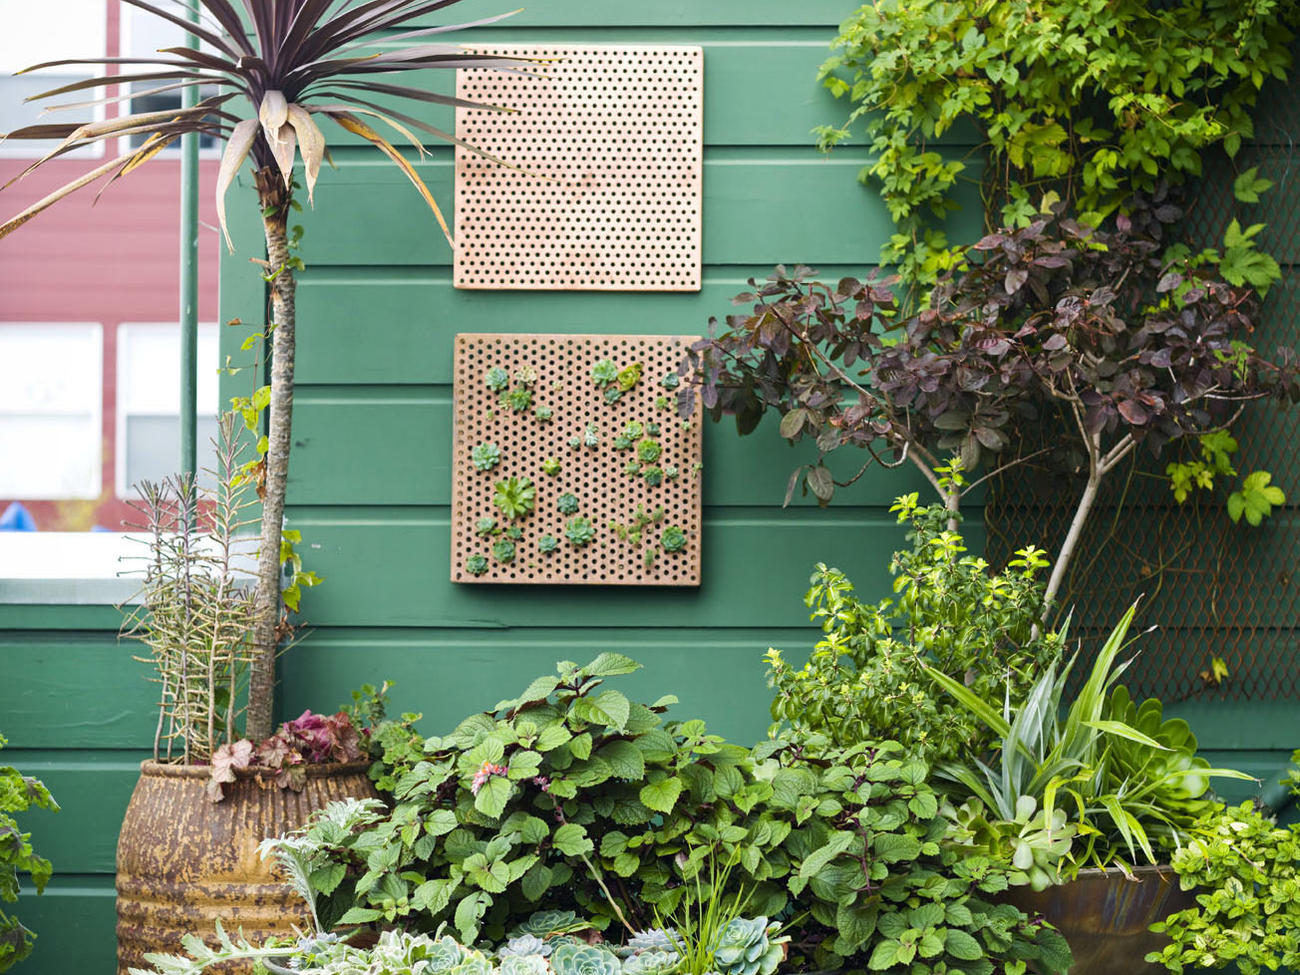 5 Tricks for a Small Urban Garden